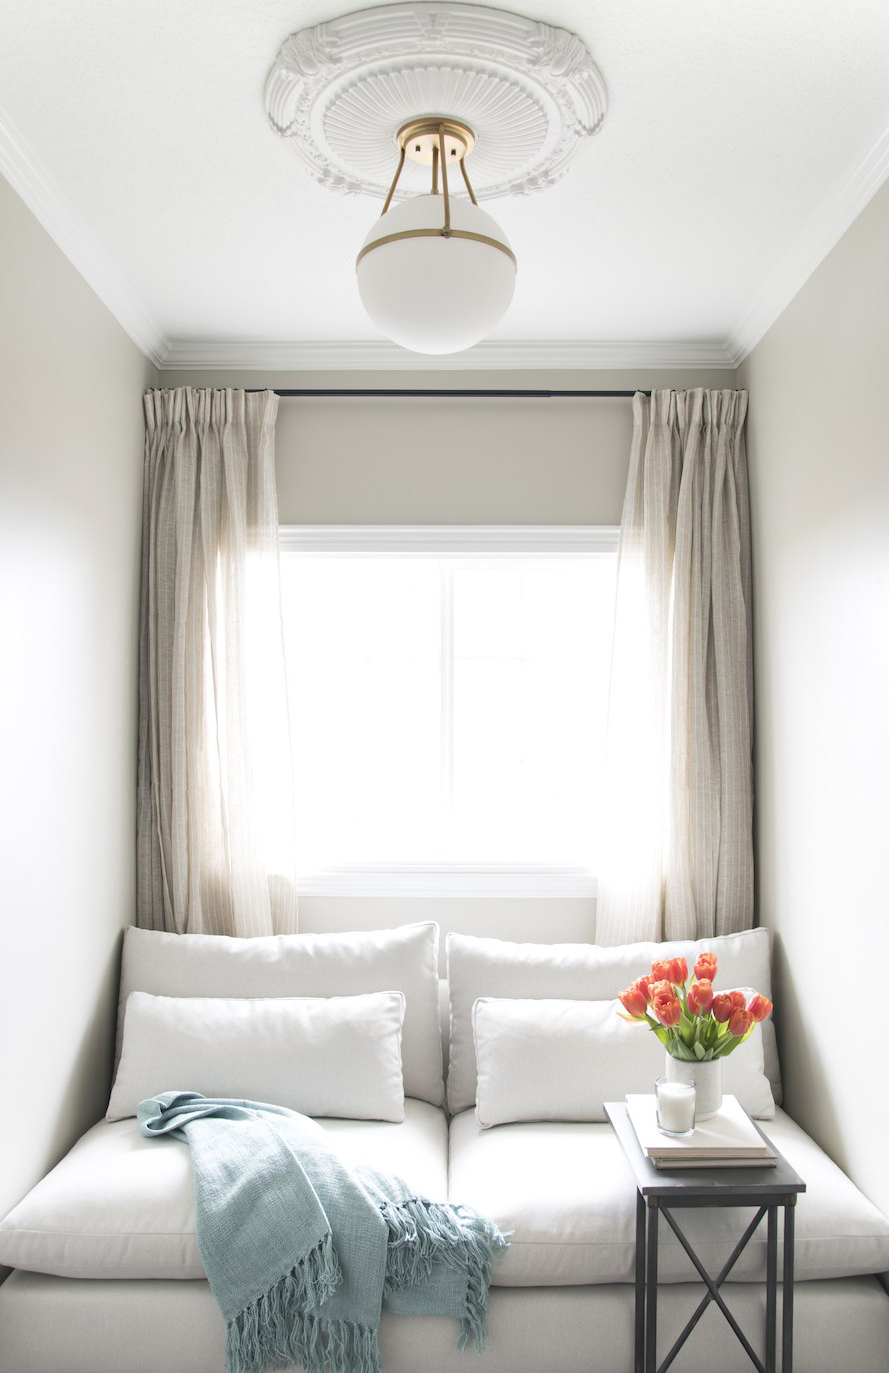 5 Ways to Love Being Home Right Now - roomfortuesday.com